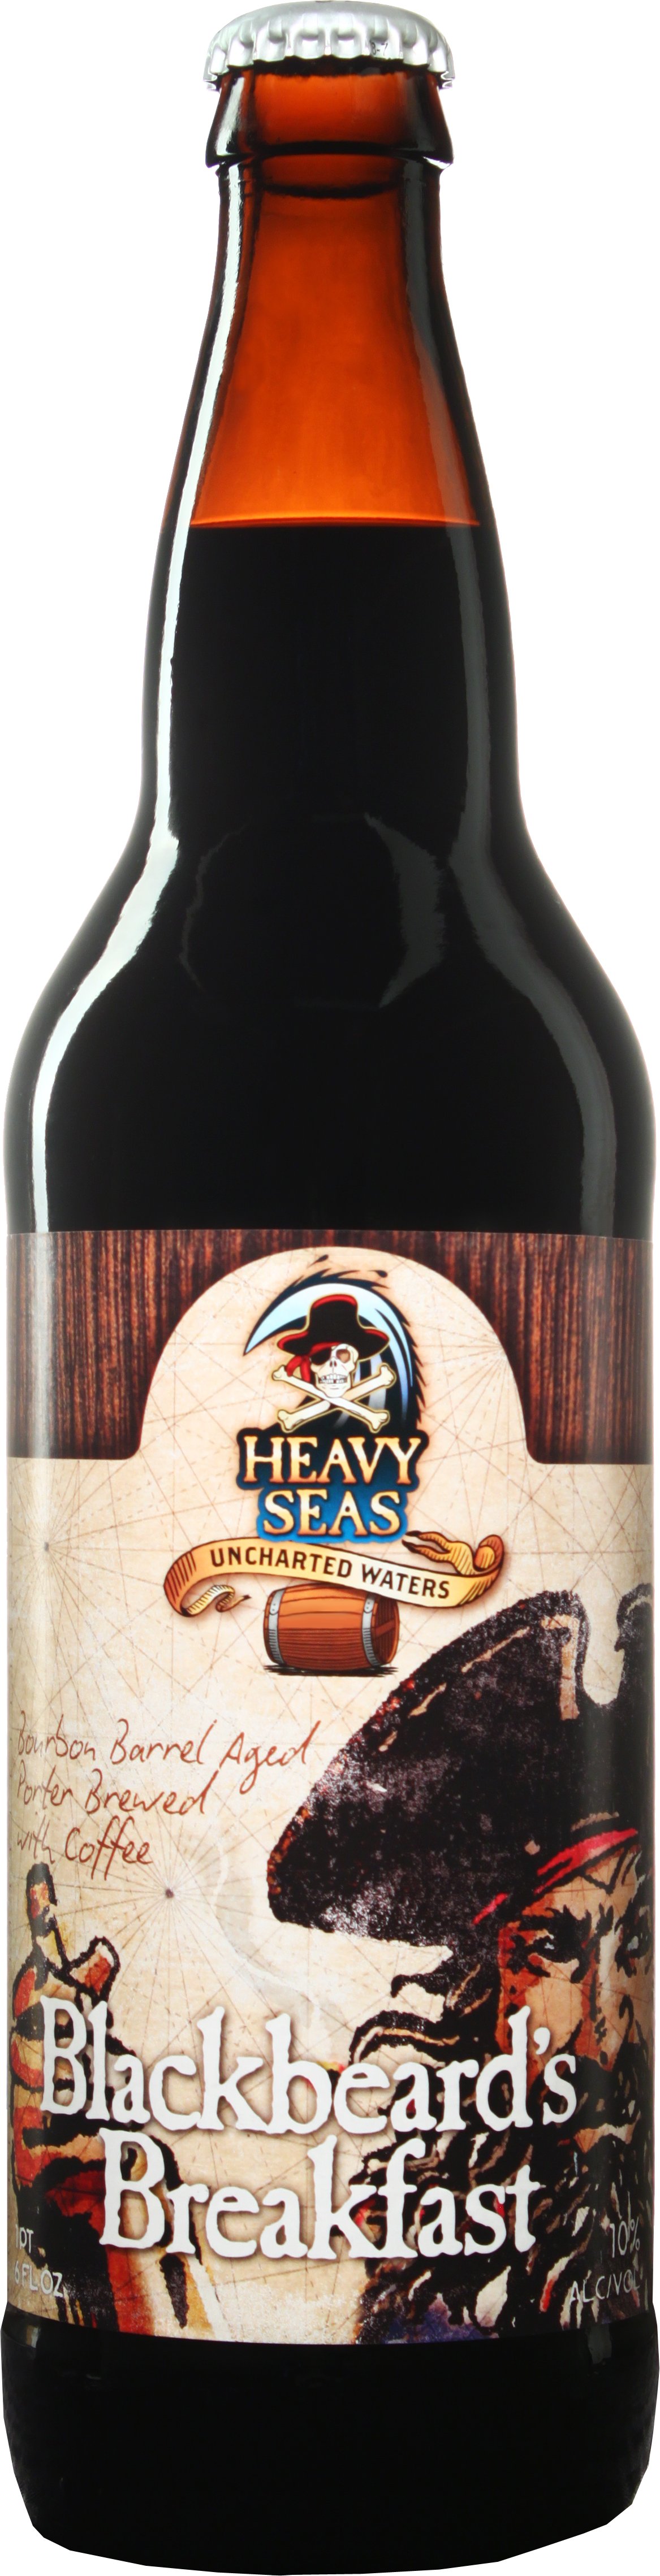 Blackbeard's Breakfast (Heavy Seas)